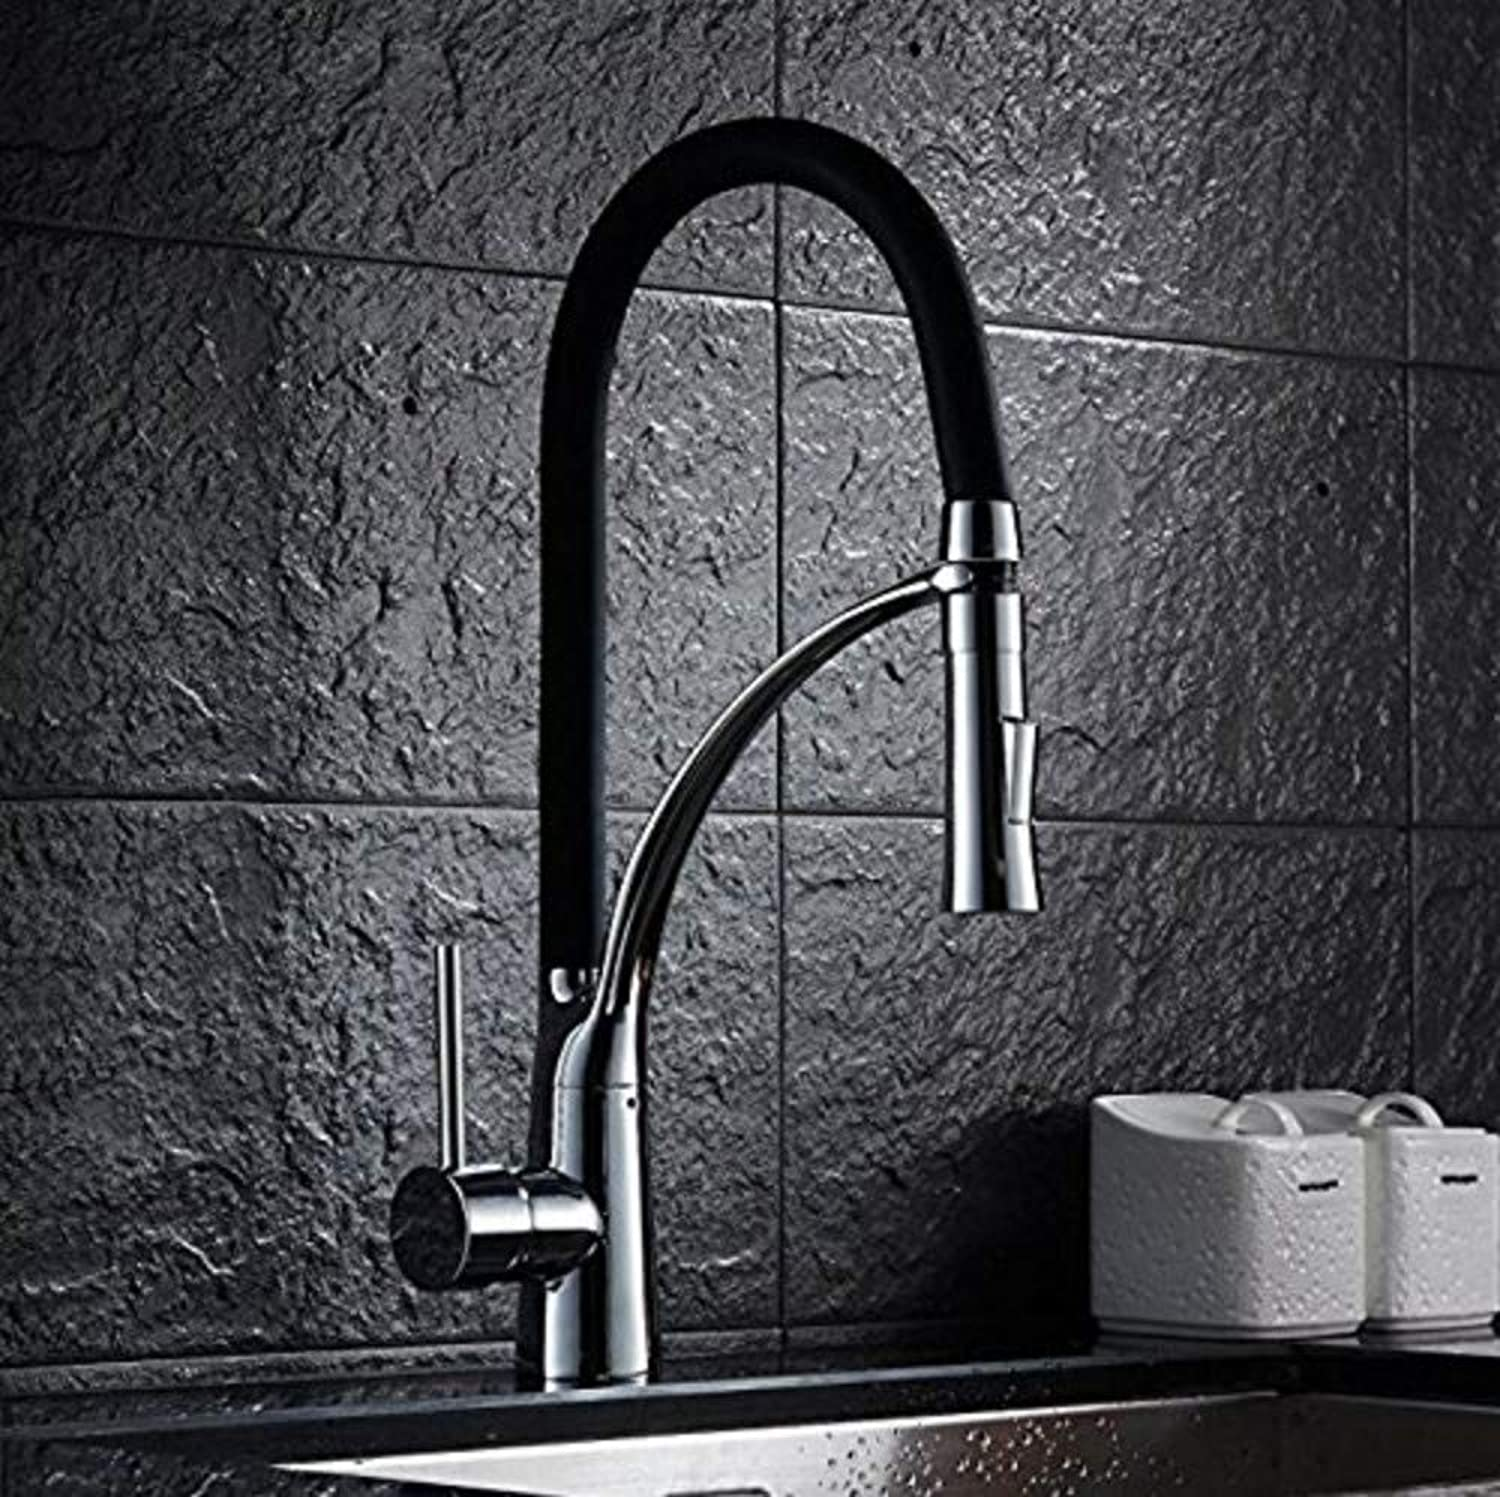 Bathroom Sink Basin Lever Mixer Tap Basin Faucets Faucet with Pull-Out Shower Head Fitting in Kitchens Sinks Tap